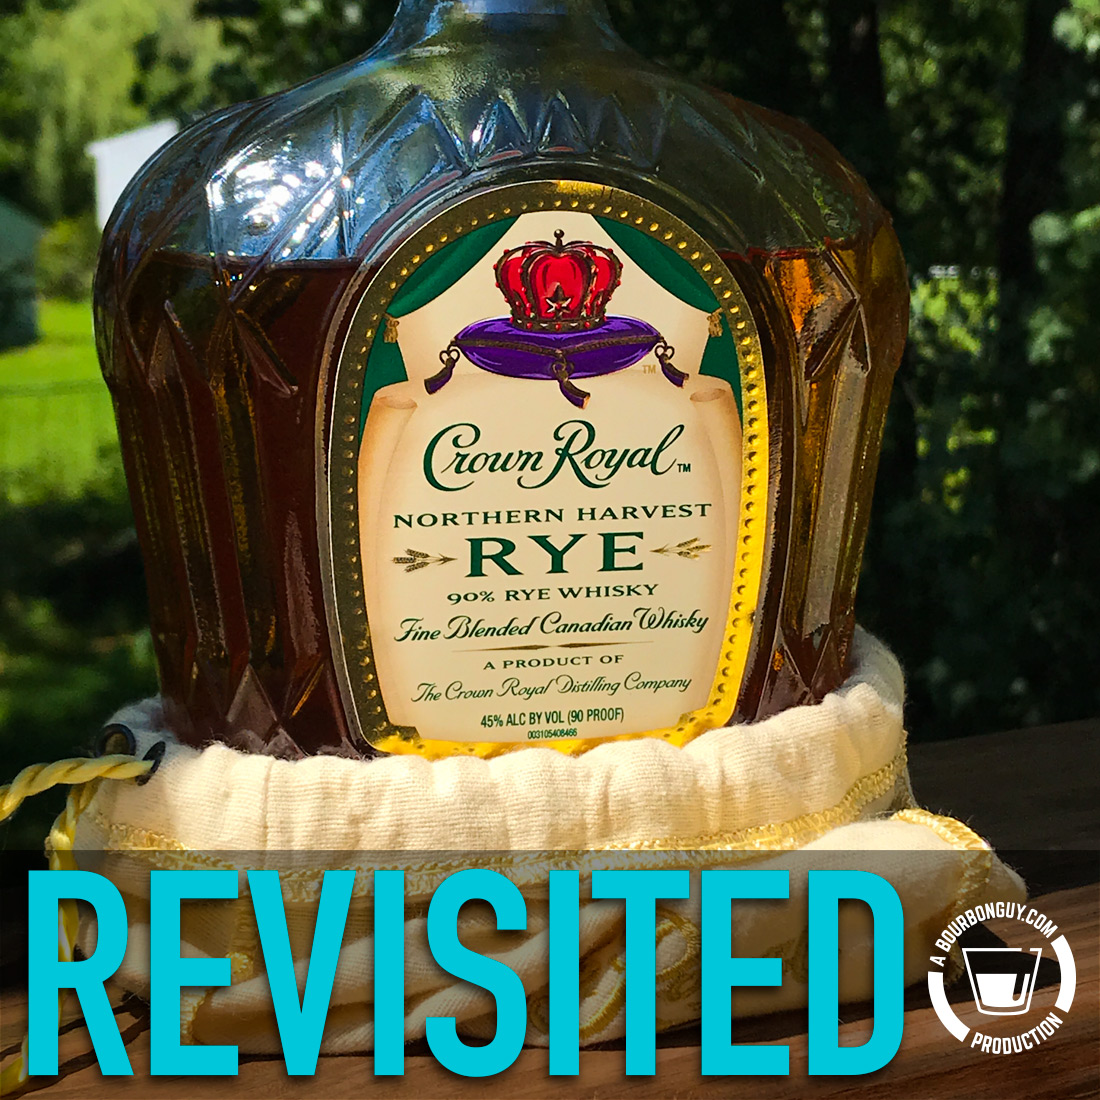 IMAGE: Crown Royal Northern Harvest Rye bottle in a beige bad